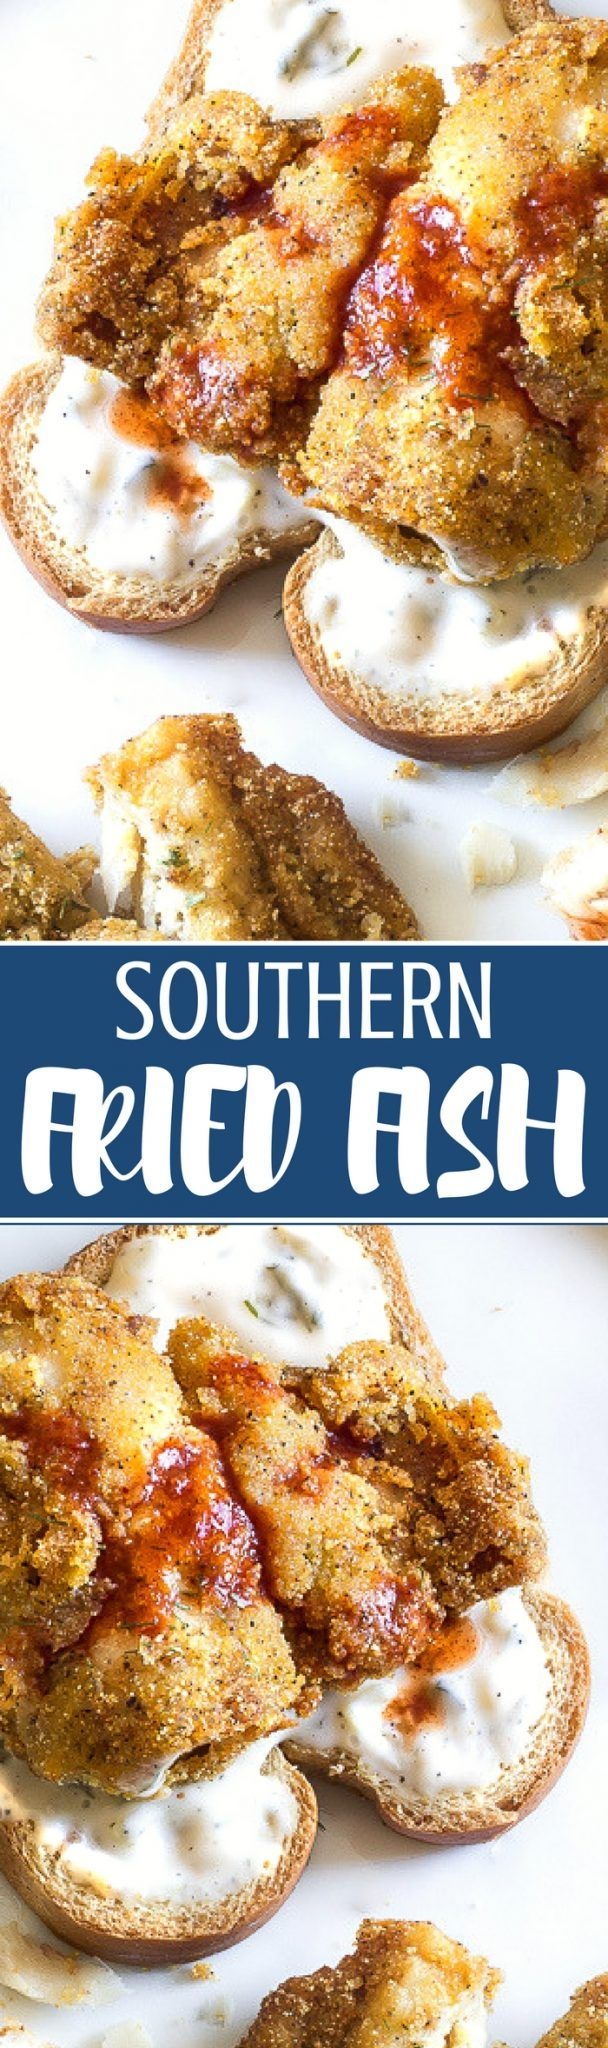 Classic southern fried fish is lightly seasoned and fried until golden then served with bright tartar sauce. So tender, flaky and soft but crisp. So delicious! #friedfish #friedfood #whitingfish #southernfriedfish #fish